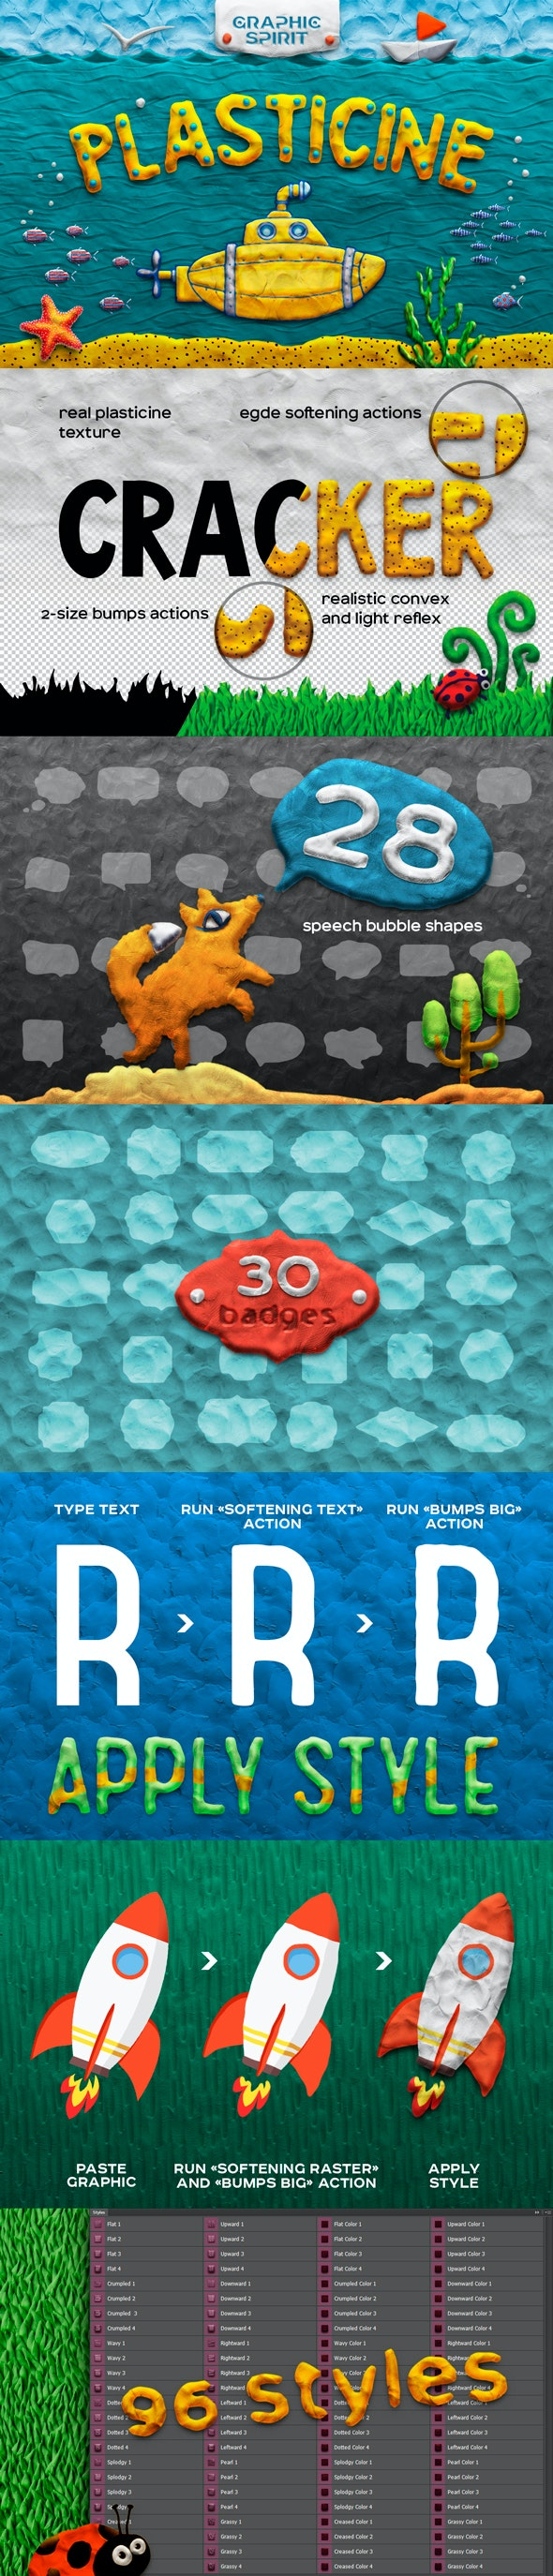 Plasticine Photoshop Toolkit - Text Effects Actions